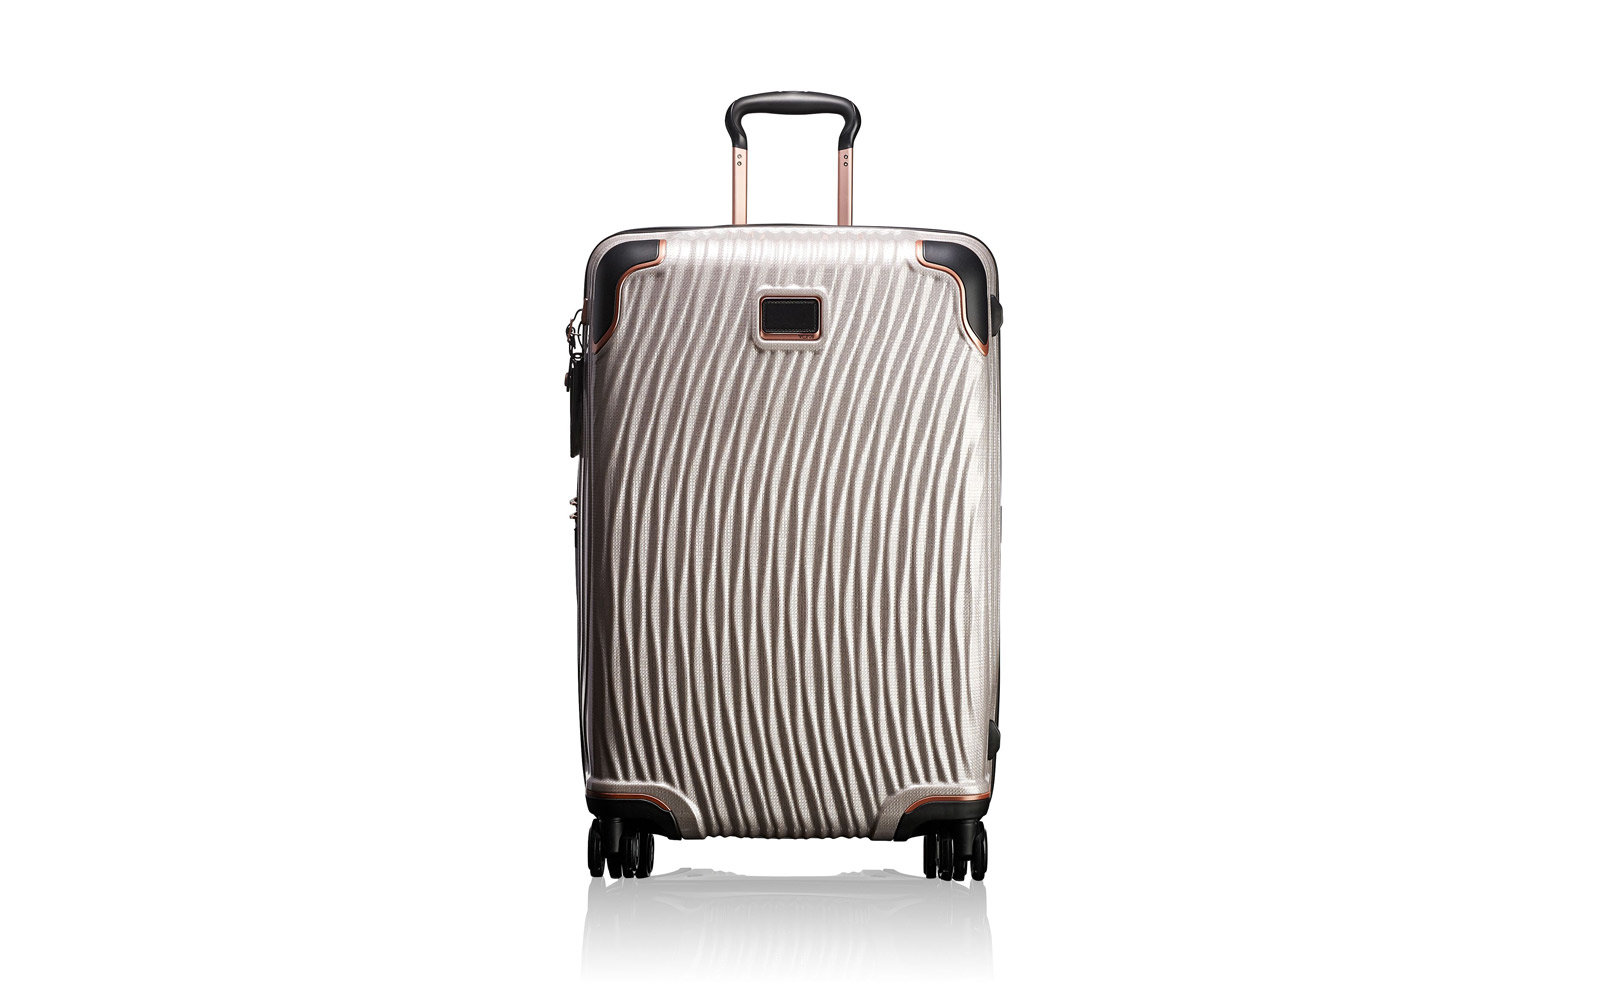 Tumi Degree Extended Trip Luggage